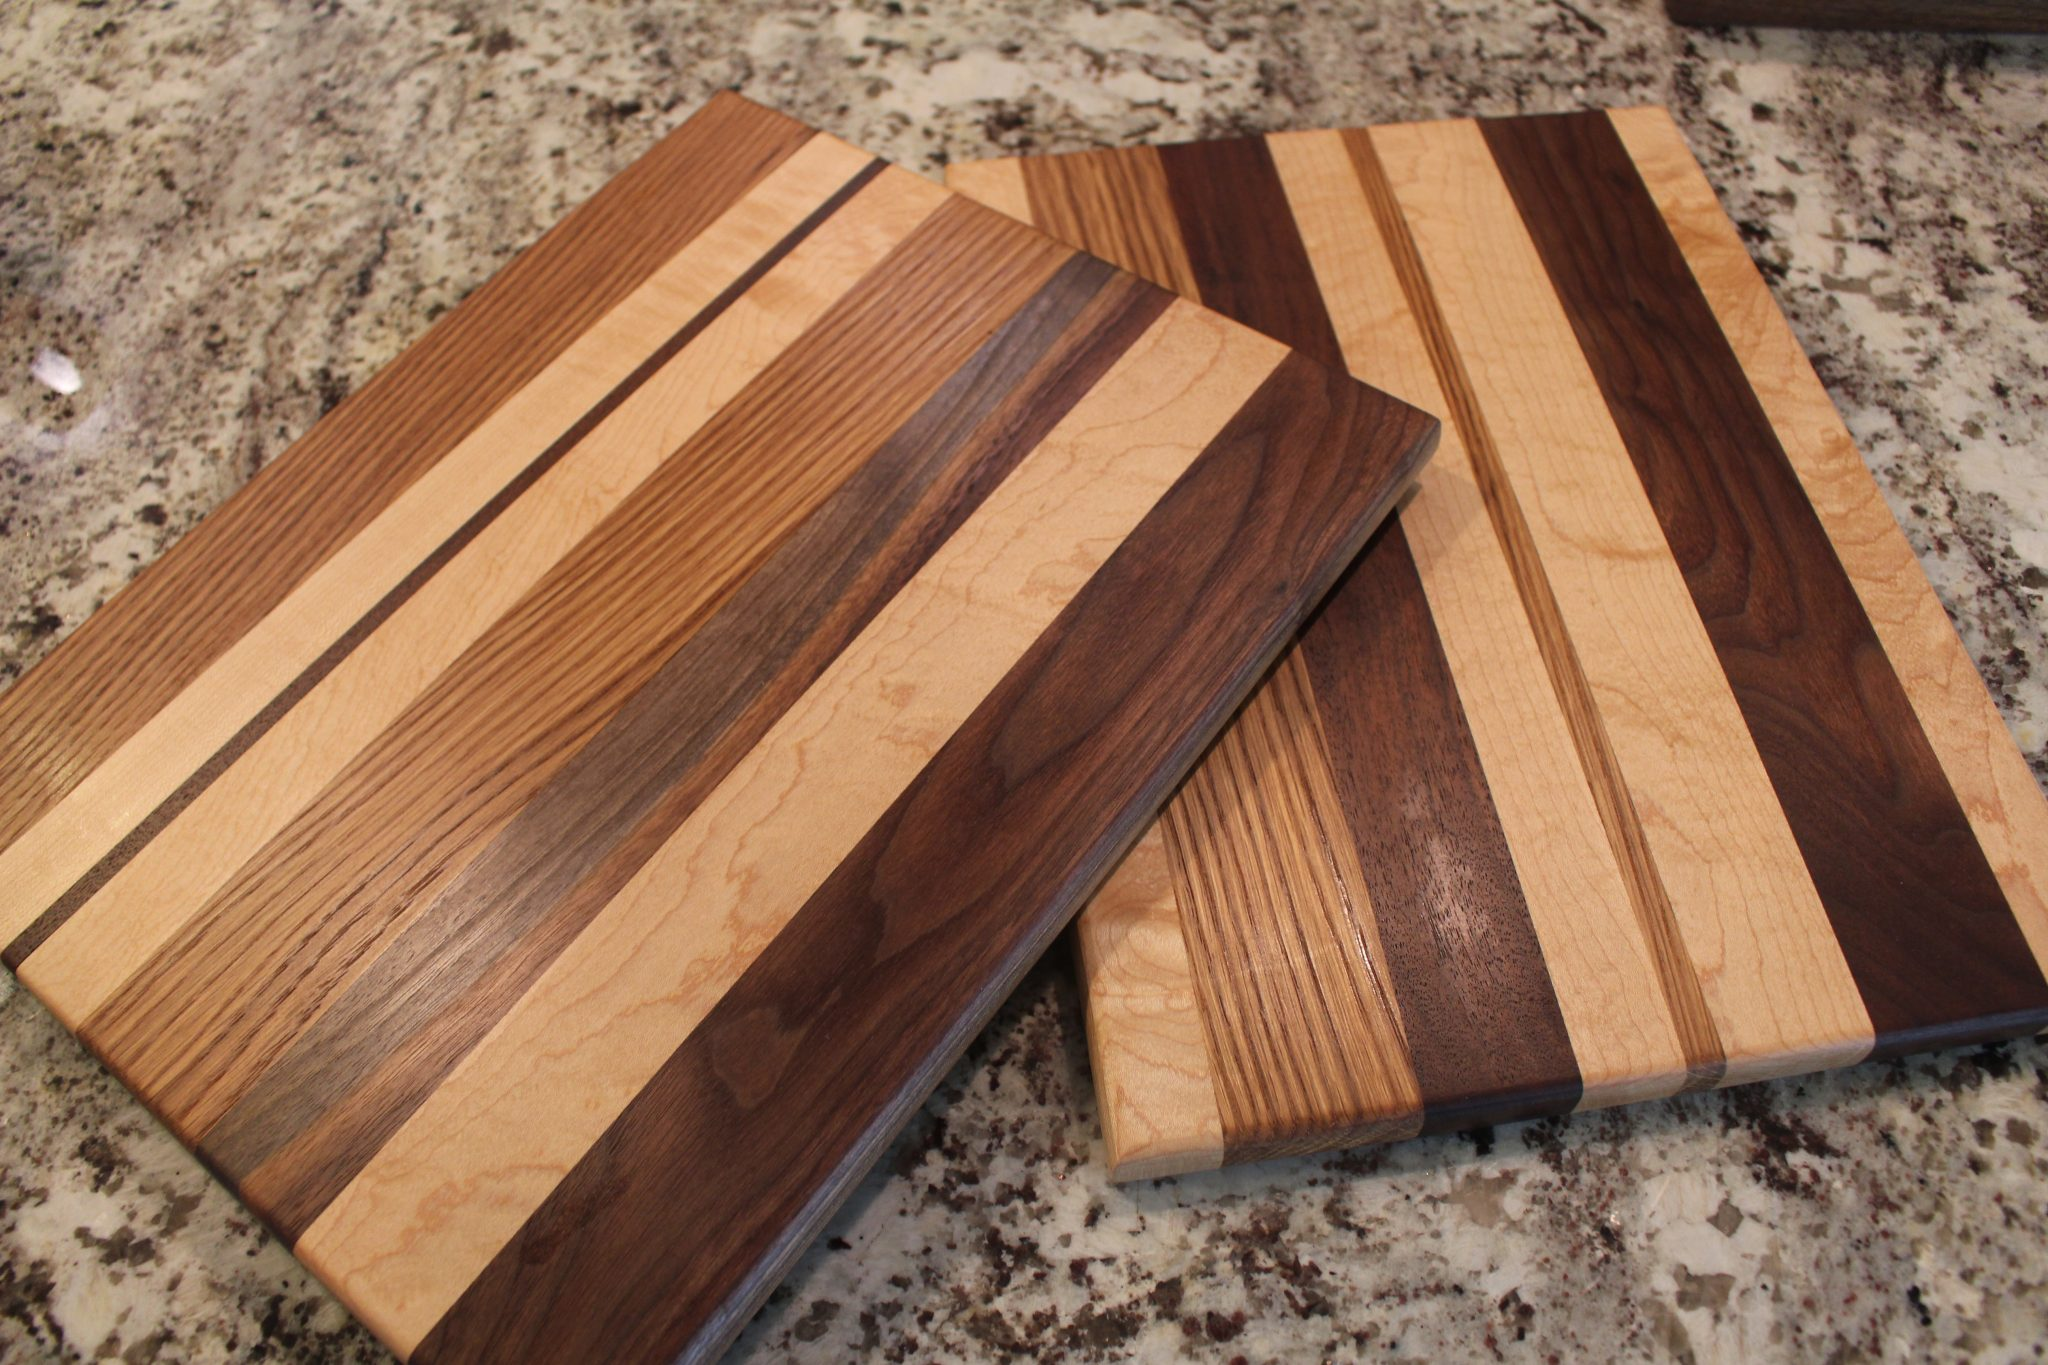 medium edge grain boards handcrafted cutting boards chopping boards. Black Bedroom Furniture Sets. Home Design Ideas